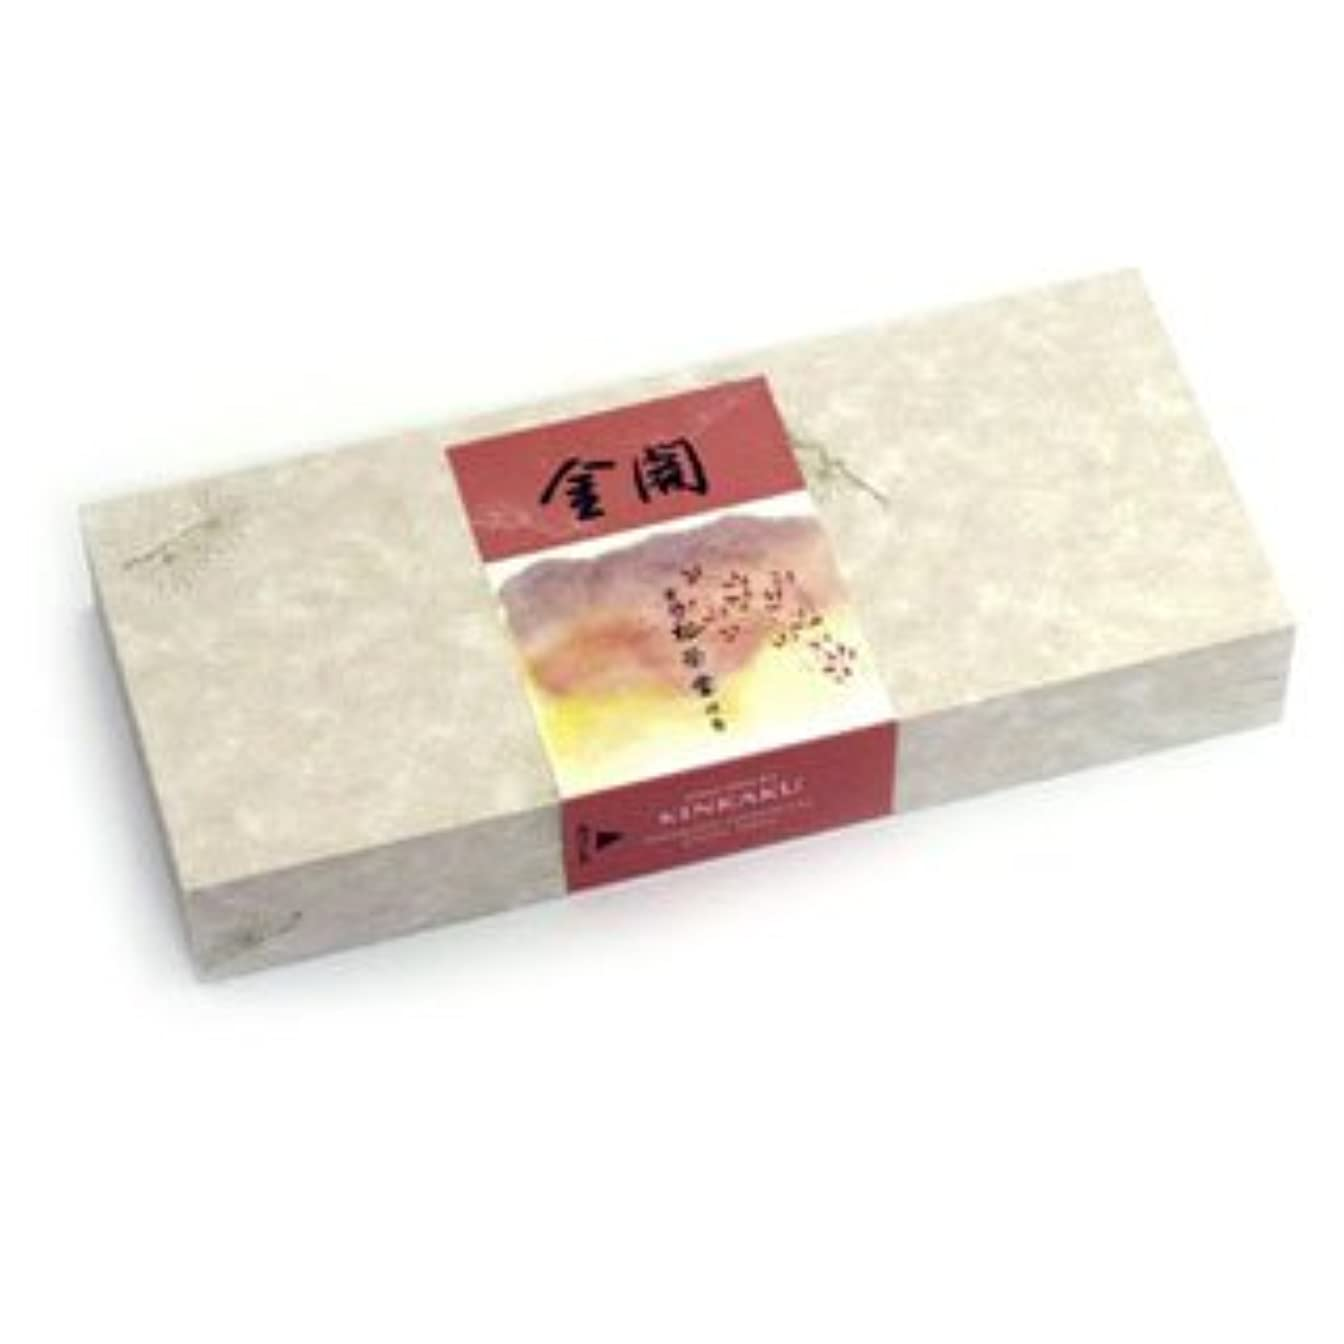 出します自己絶対にShoyeido 's Golden Pavilion Incense、150 sticks – kin-kaku